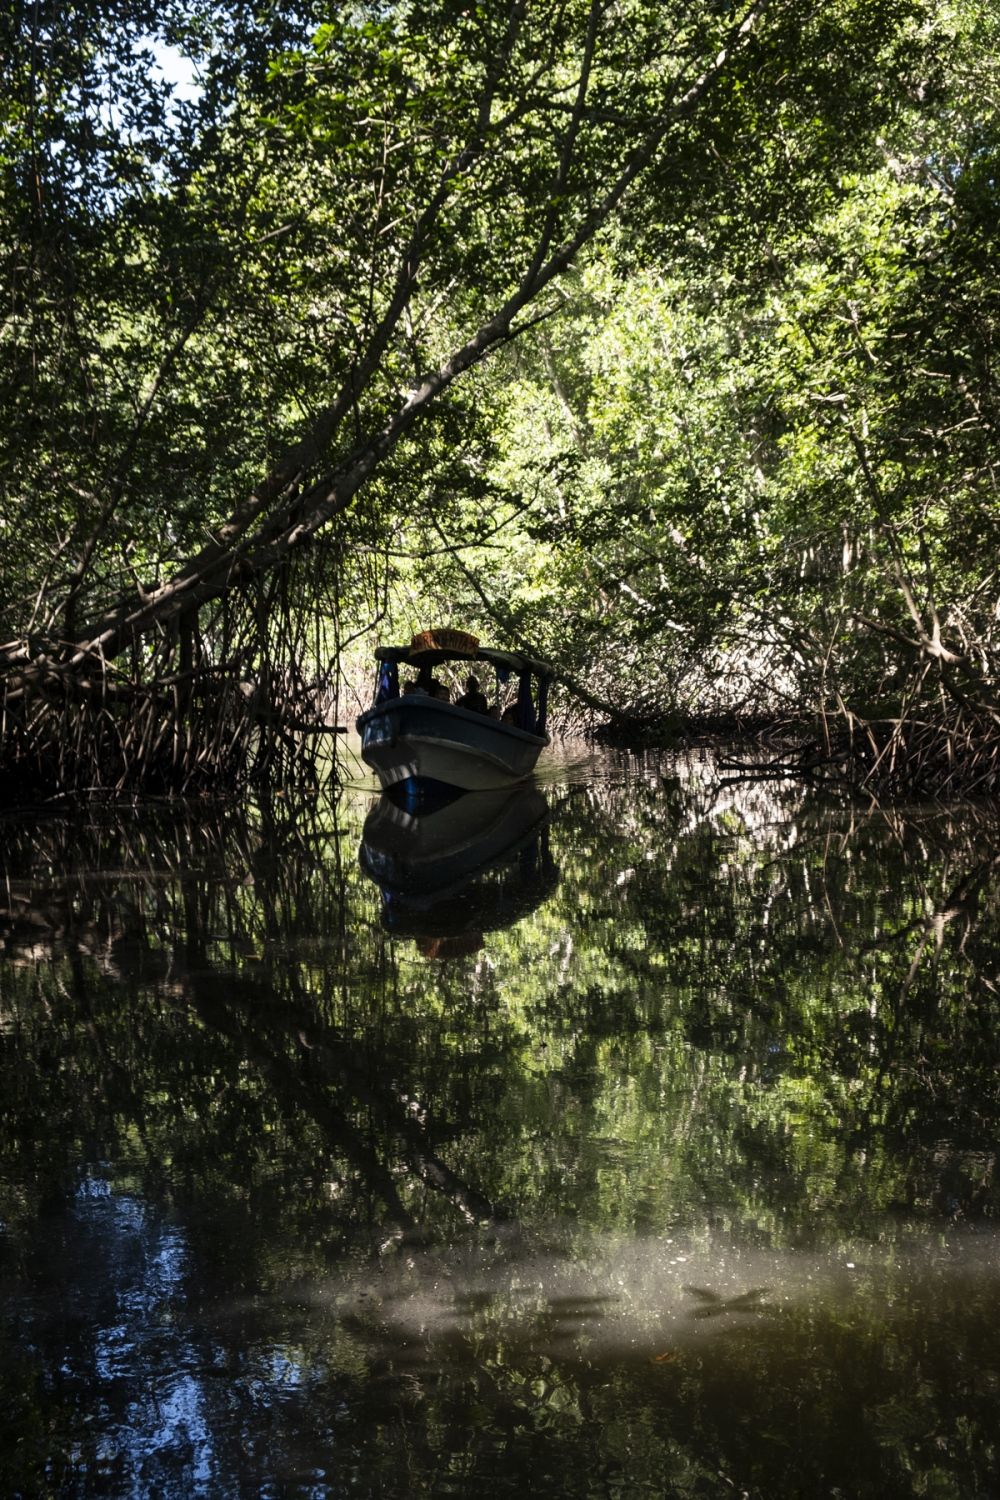 "Tourists visit the mangrove ecosystem of La Barra de Santiago. According to local experts, the community is impacted by local tourism as there is not enough investment in the area. ""La Barra is completely forgotten,"" said Jose Antonio Villedas, an employee of El Salvador's ministry of environment."